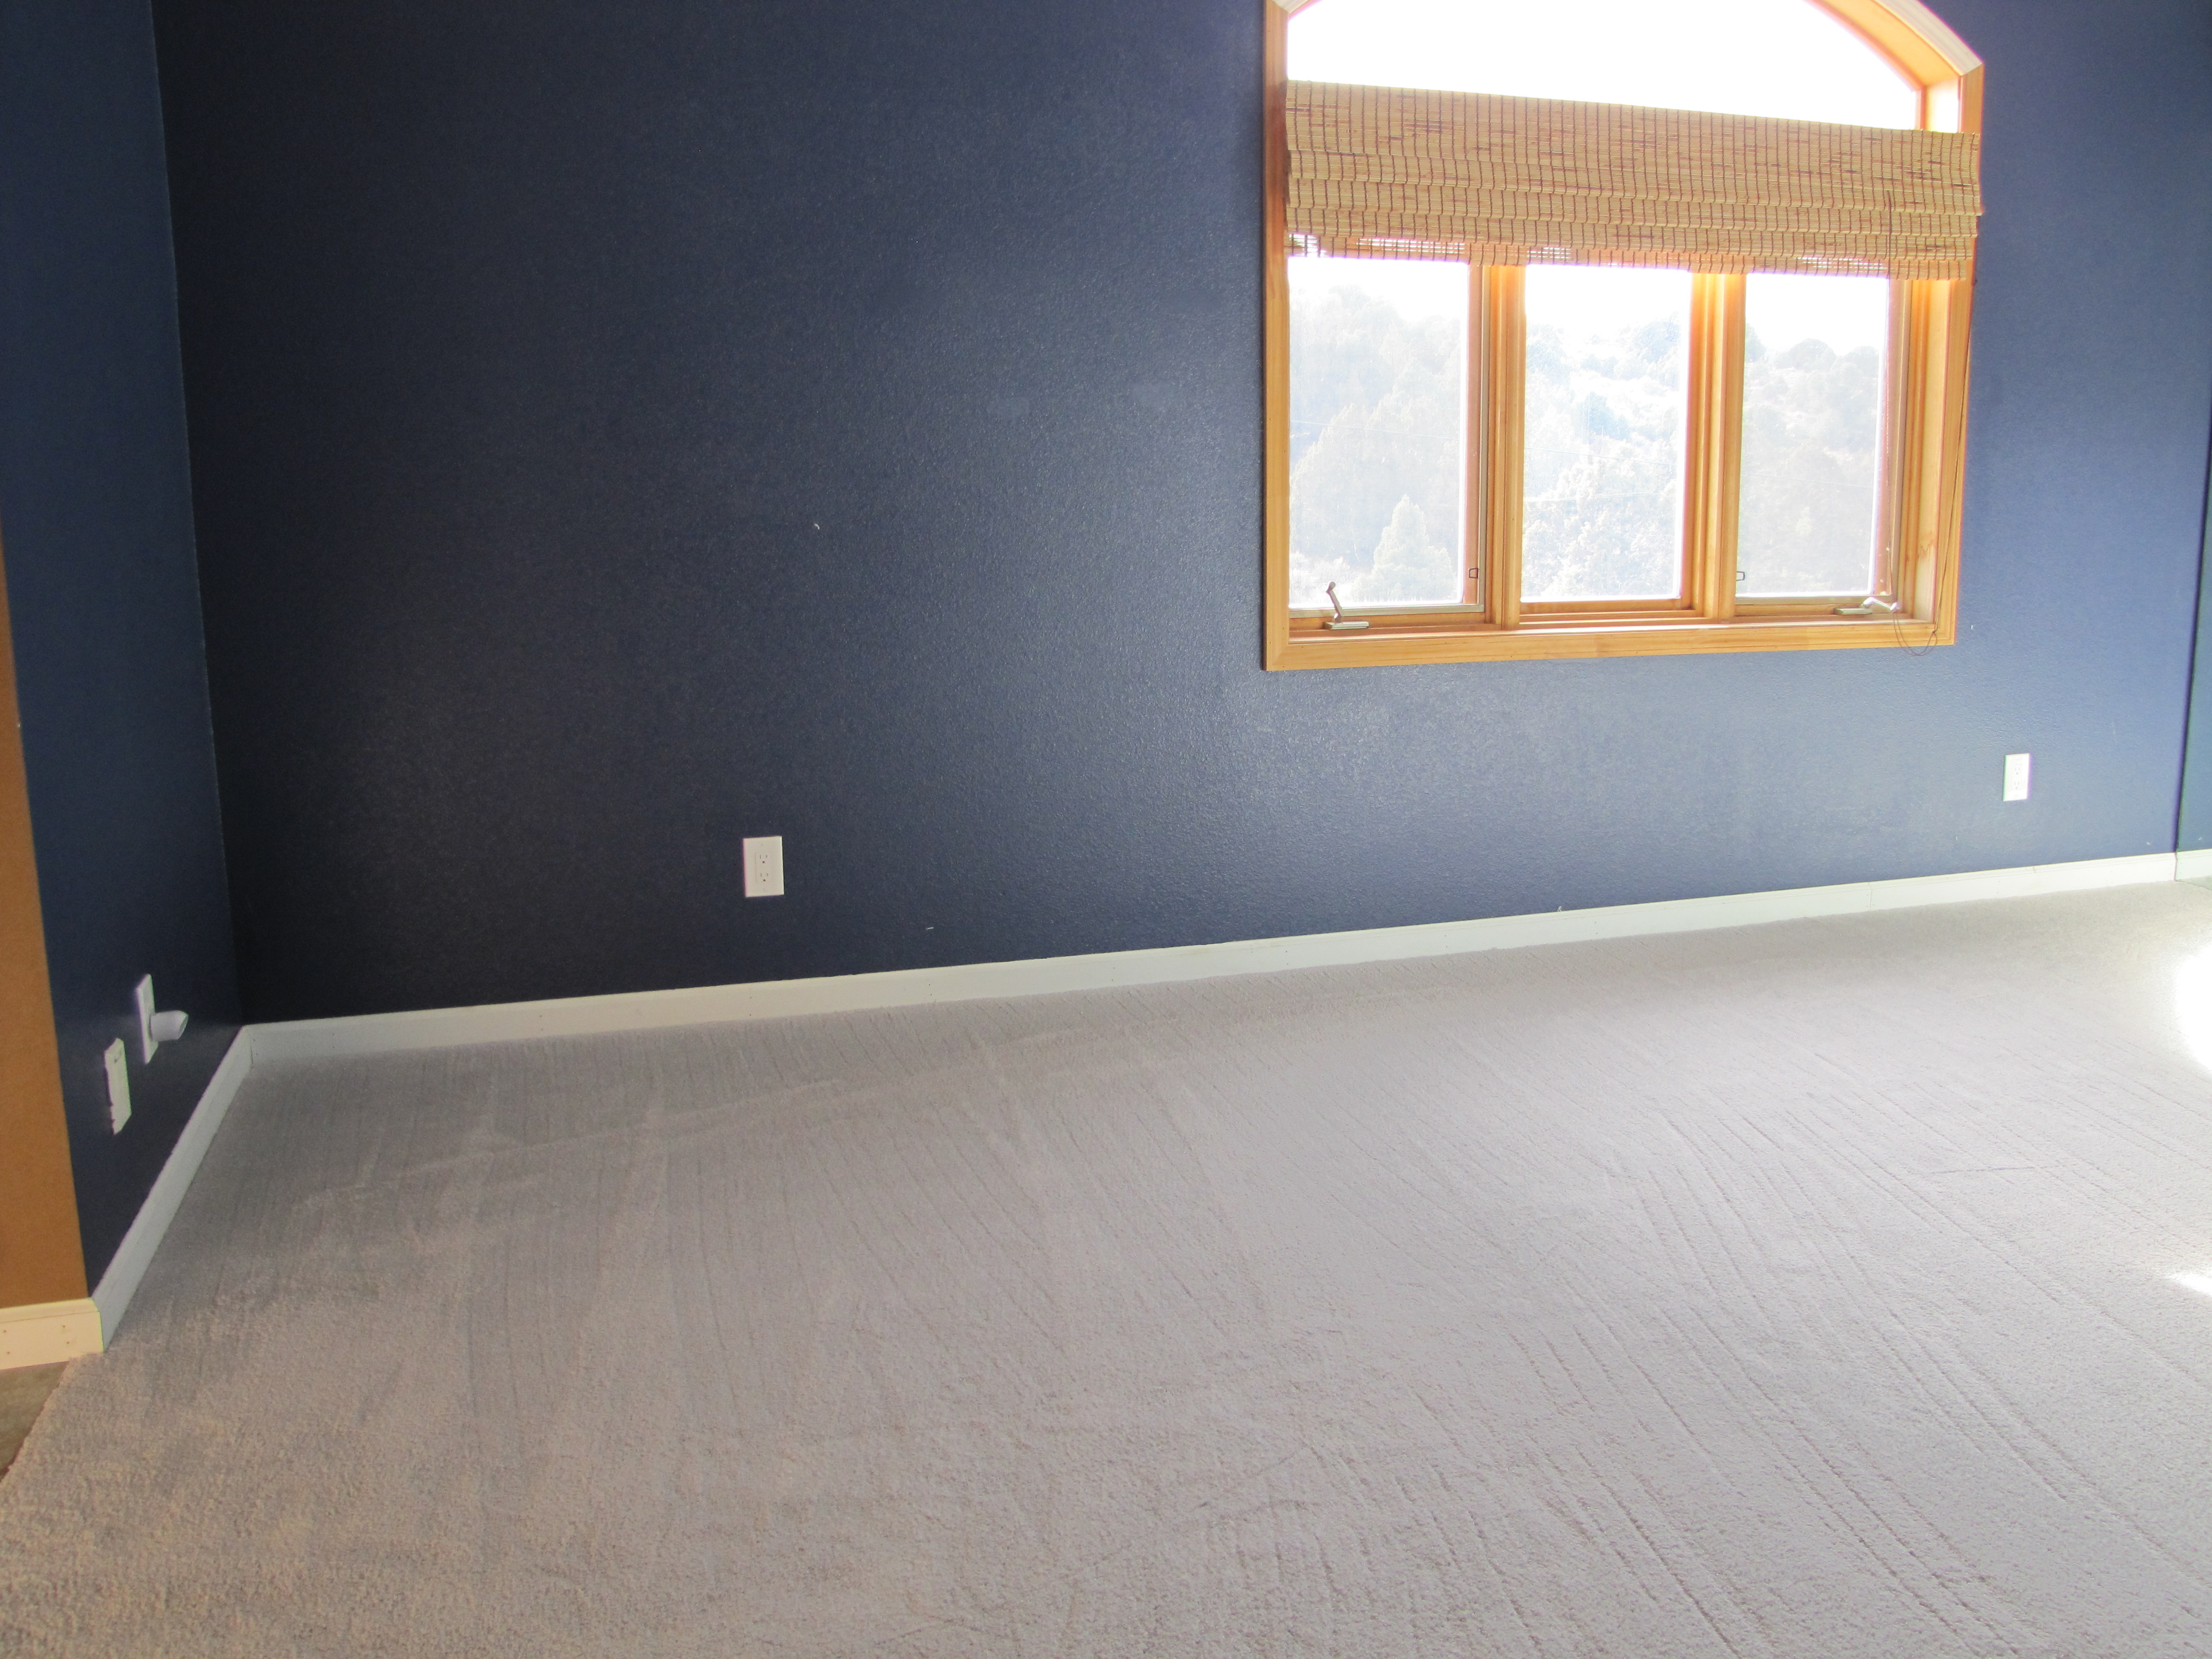 New Carpet! And Paint! | Jackalope Hollow Ranch